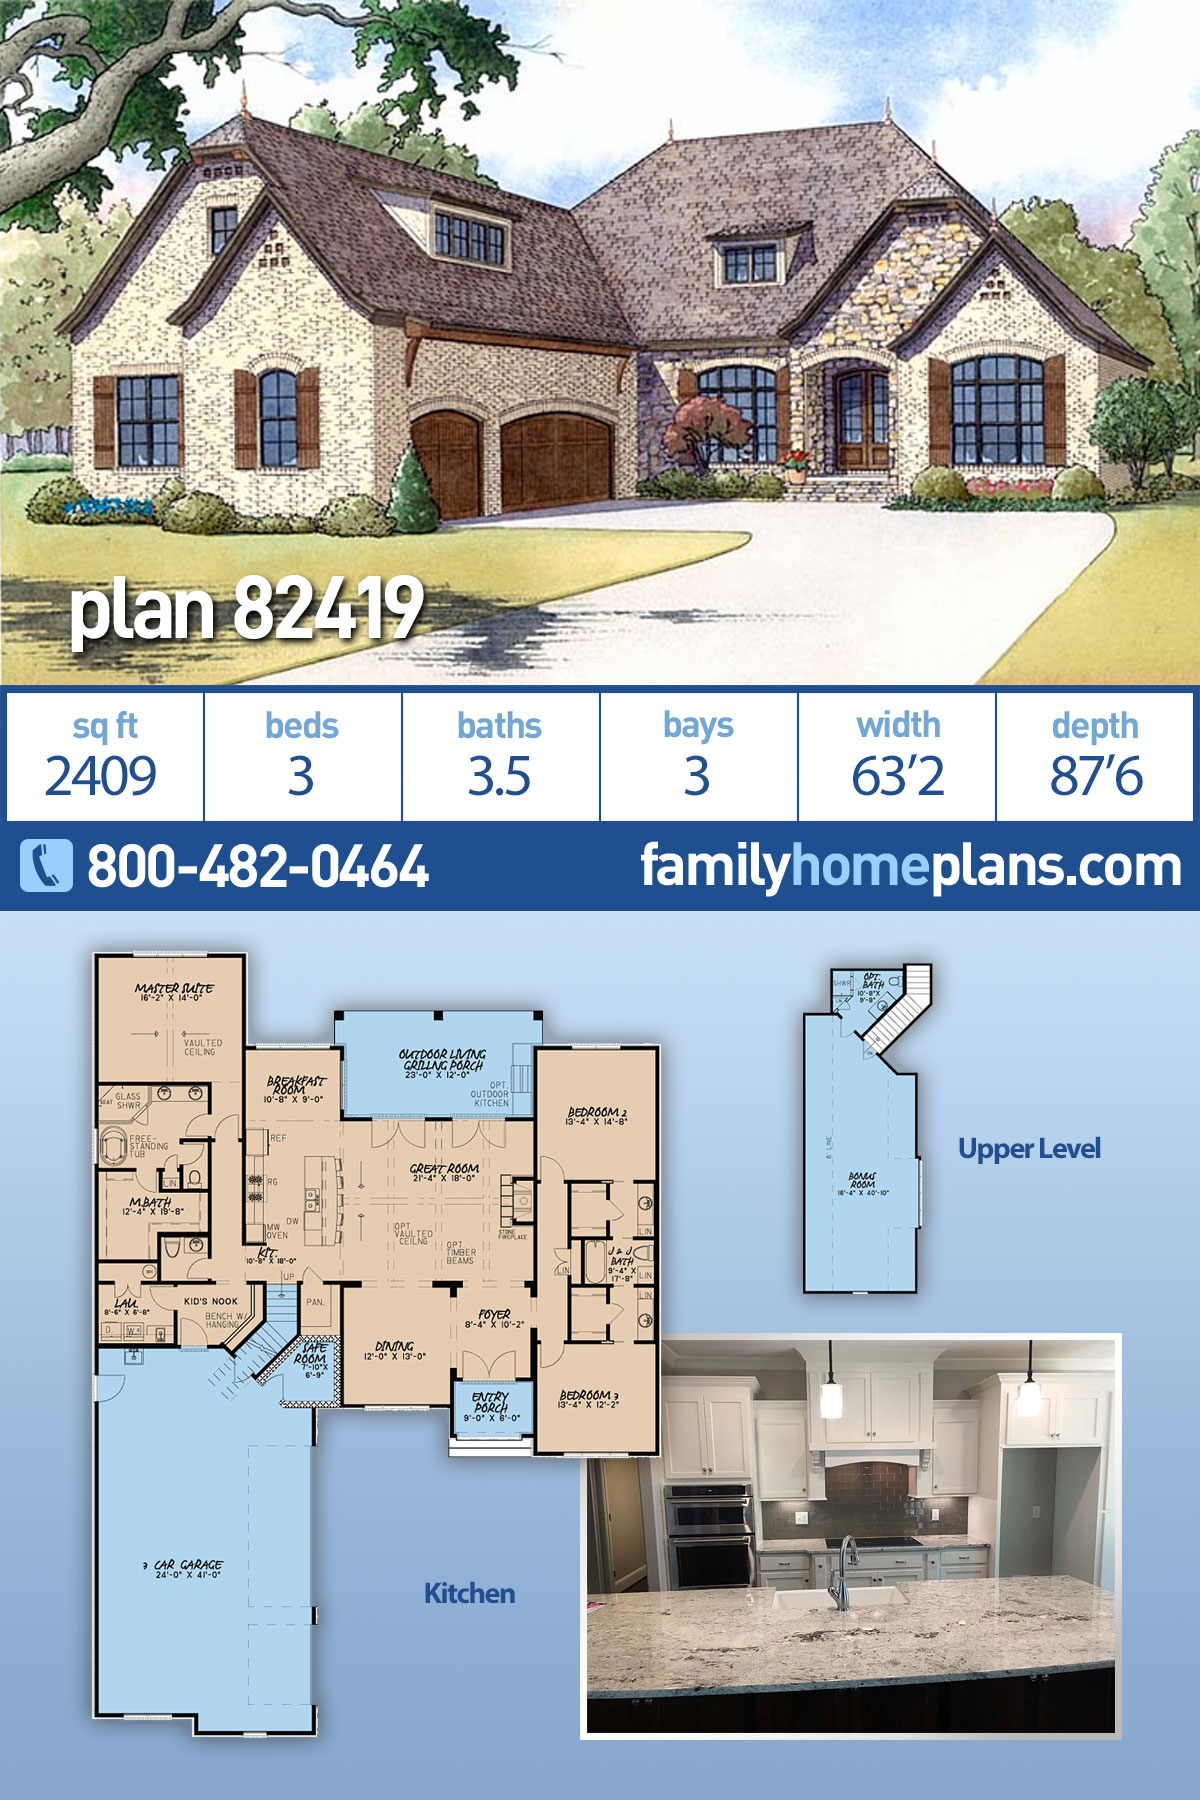 European, French Country House Plan 82419 with 3 Beds, 4 Baths, 3 Car Garage